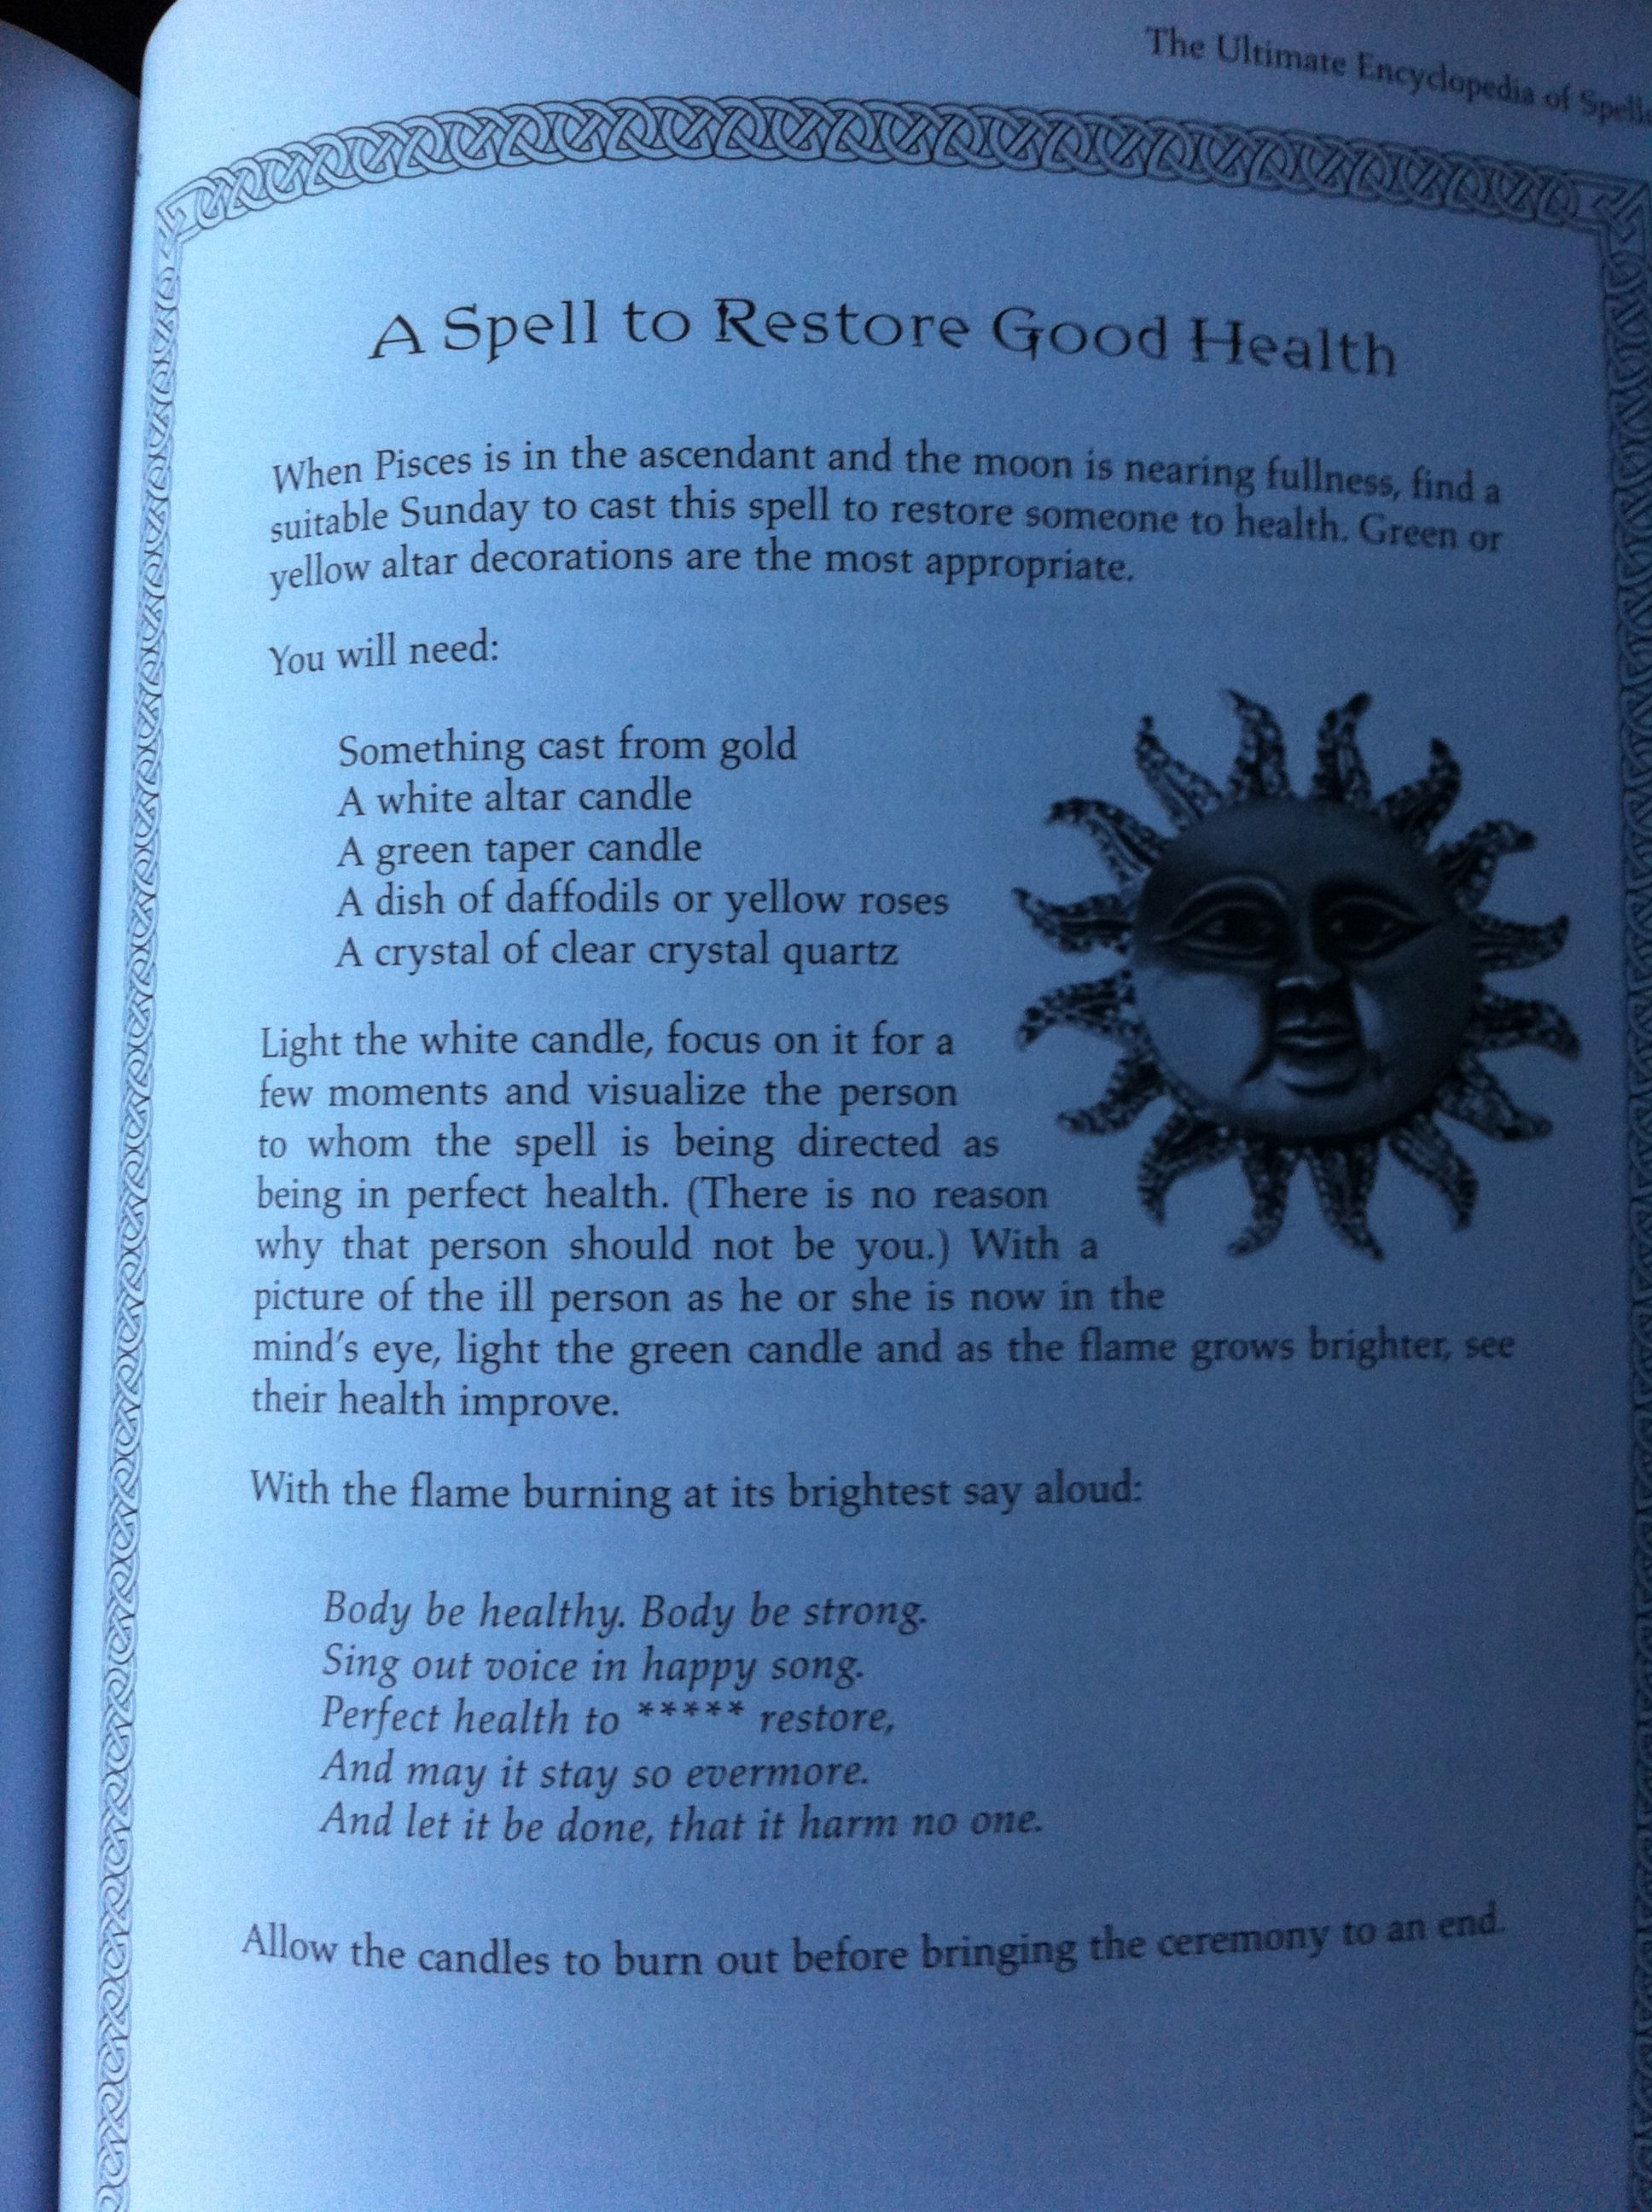 A spell to restore good health taken from The Ultimate